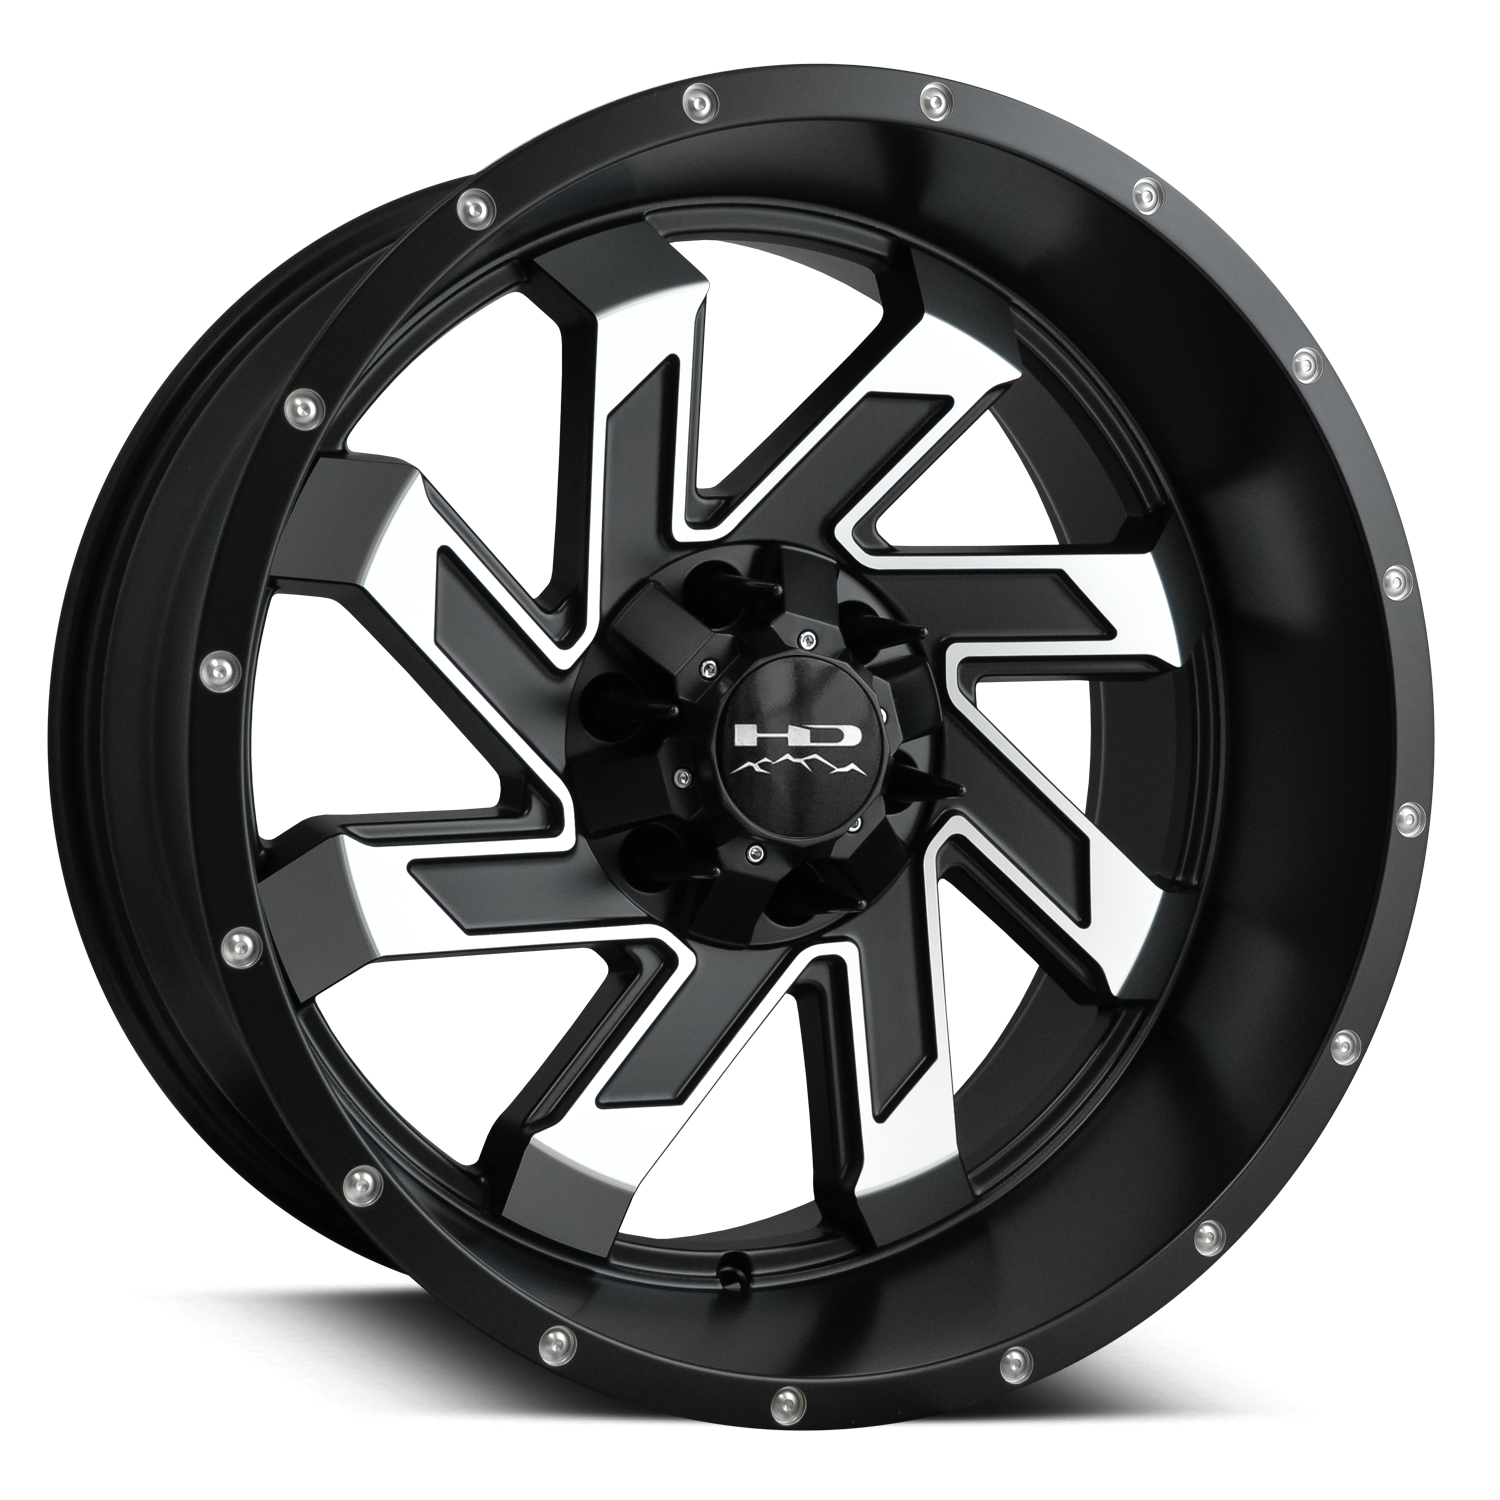 Shop the HD Off-Road Wheels SAW Online for Truck & Jeep Models